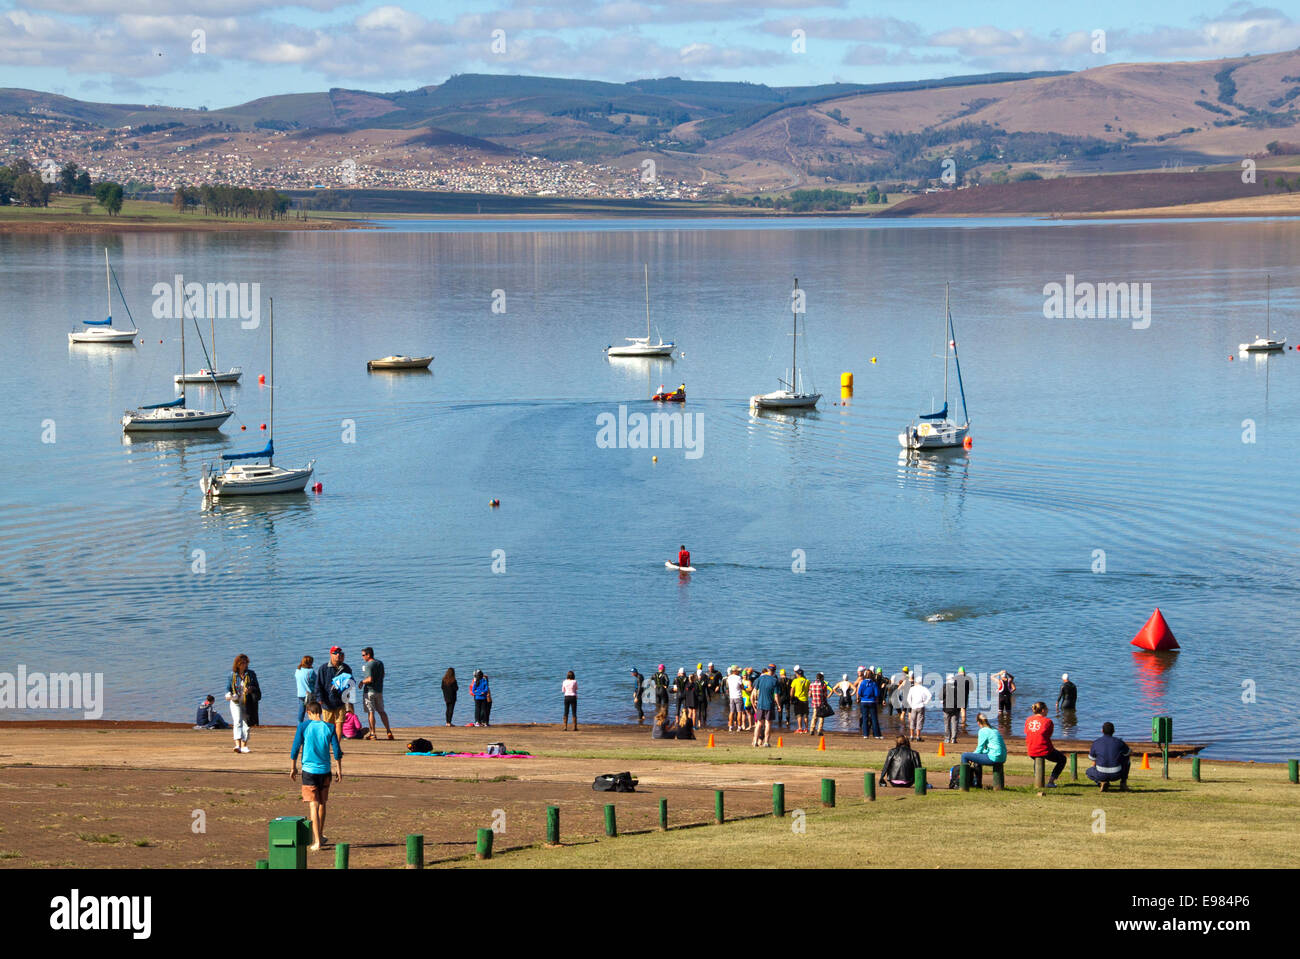 participants and spectators gather for the start of the On LIne Tri Series Race 1 triathlon at Midmar Dam in the Stock Photo